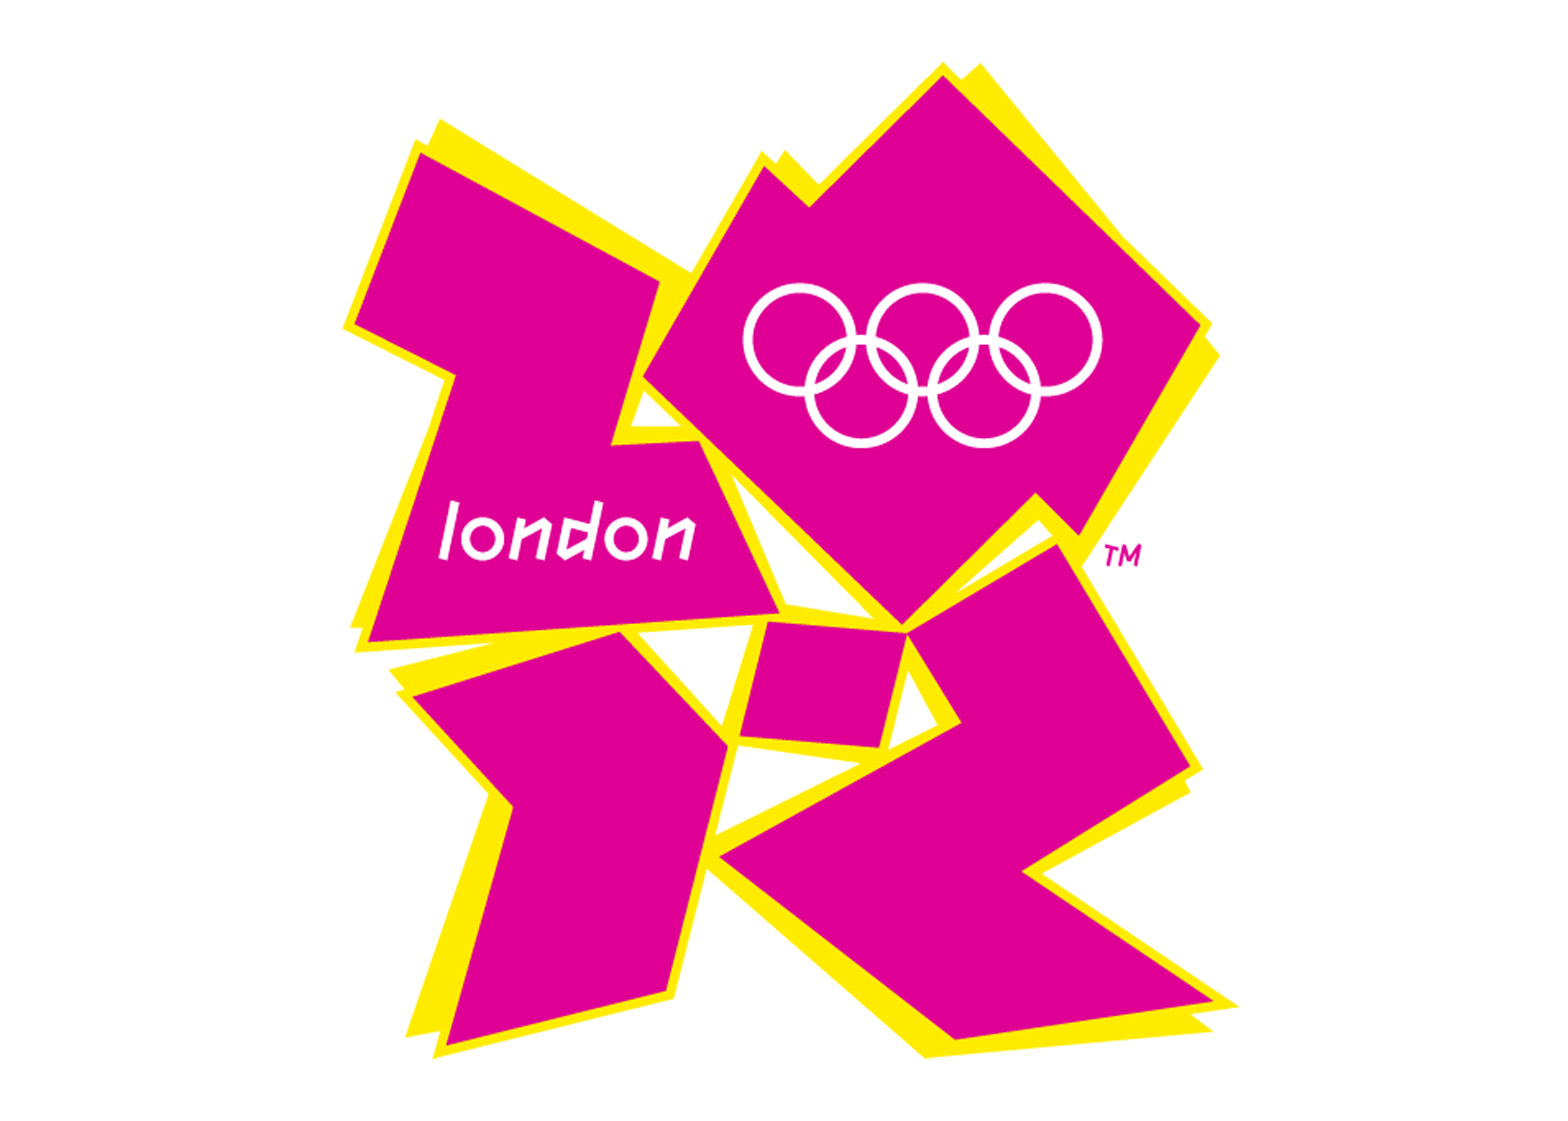 Olympics logos since the 1920s: The best and the worst.